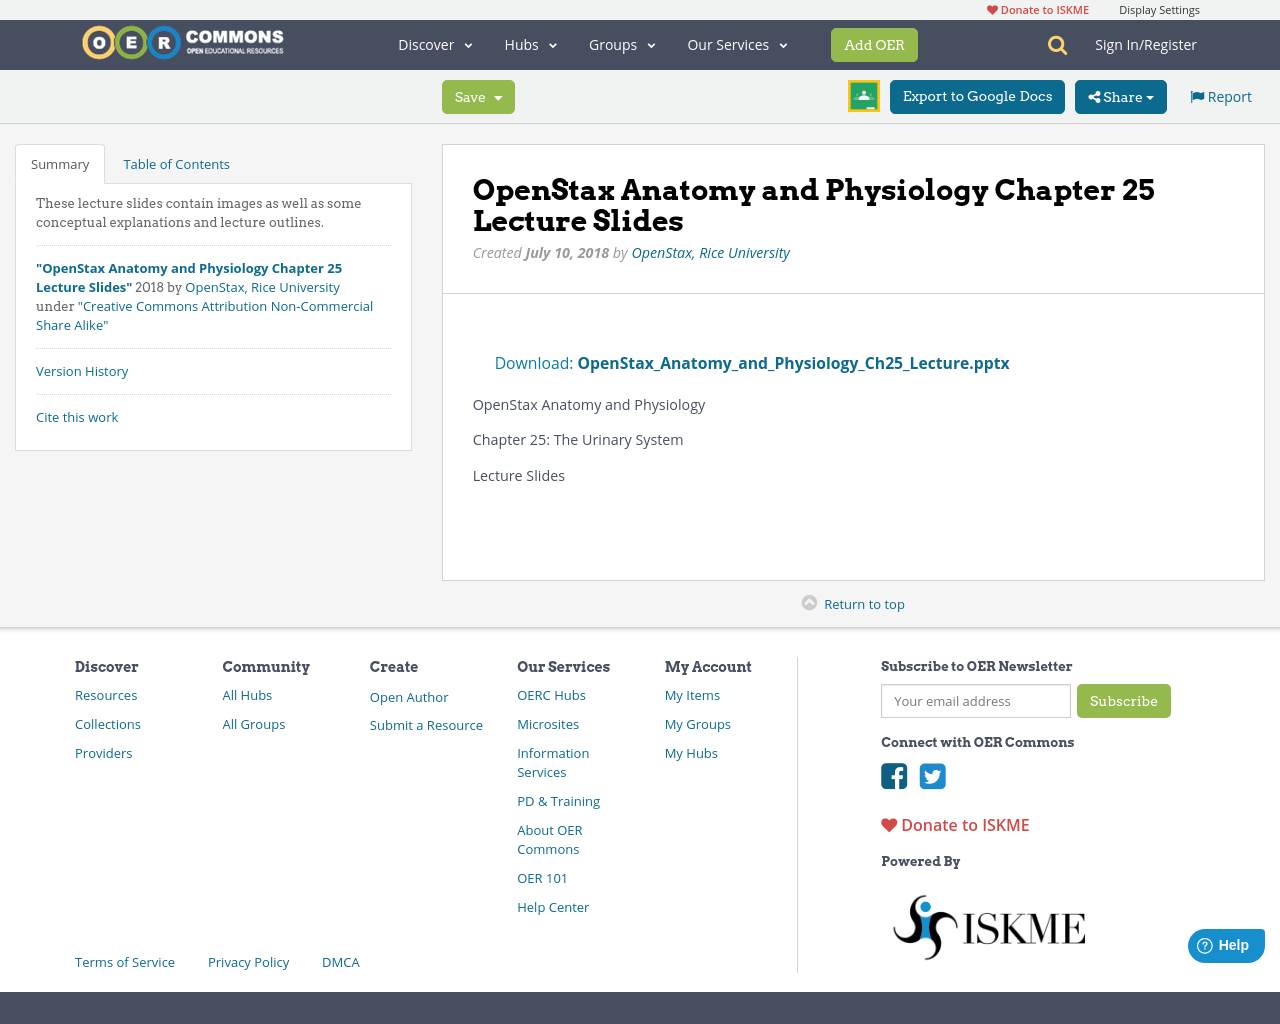 OpenStax Anatomy and Physiology Chapter 25 Lecture Slides | OER Commons